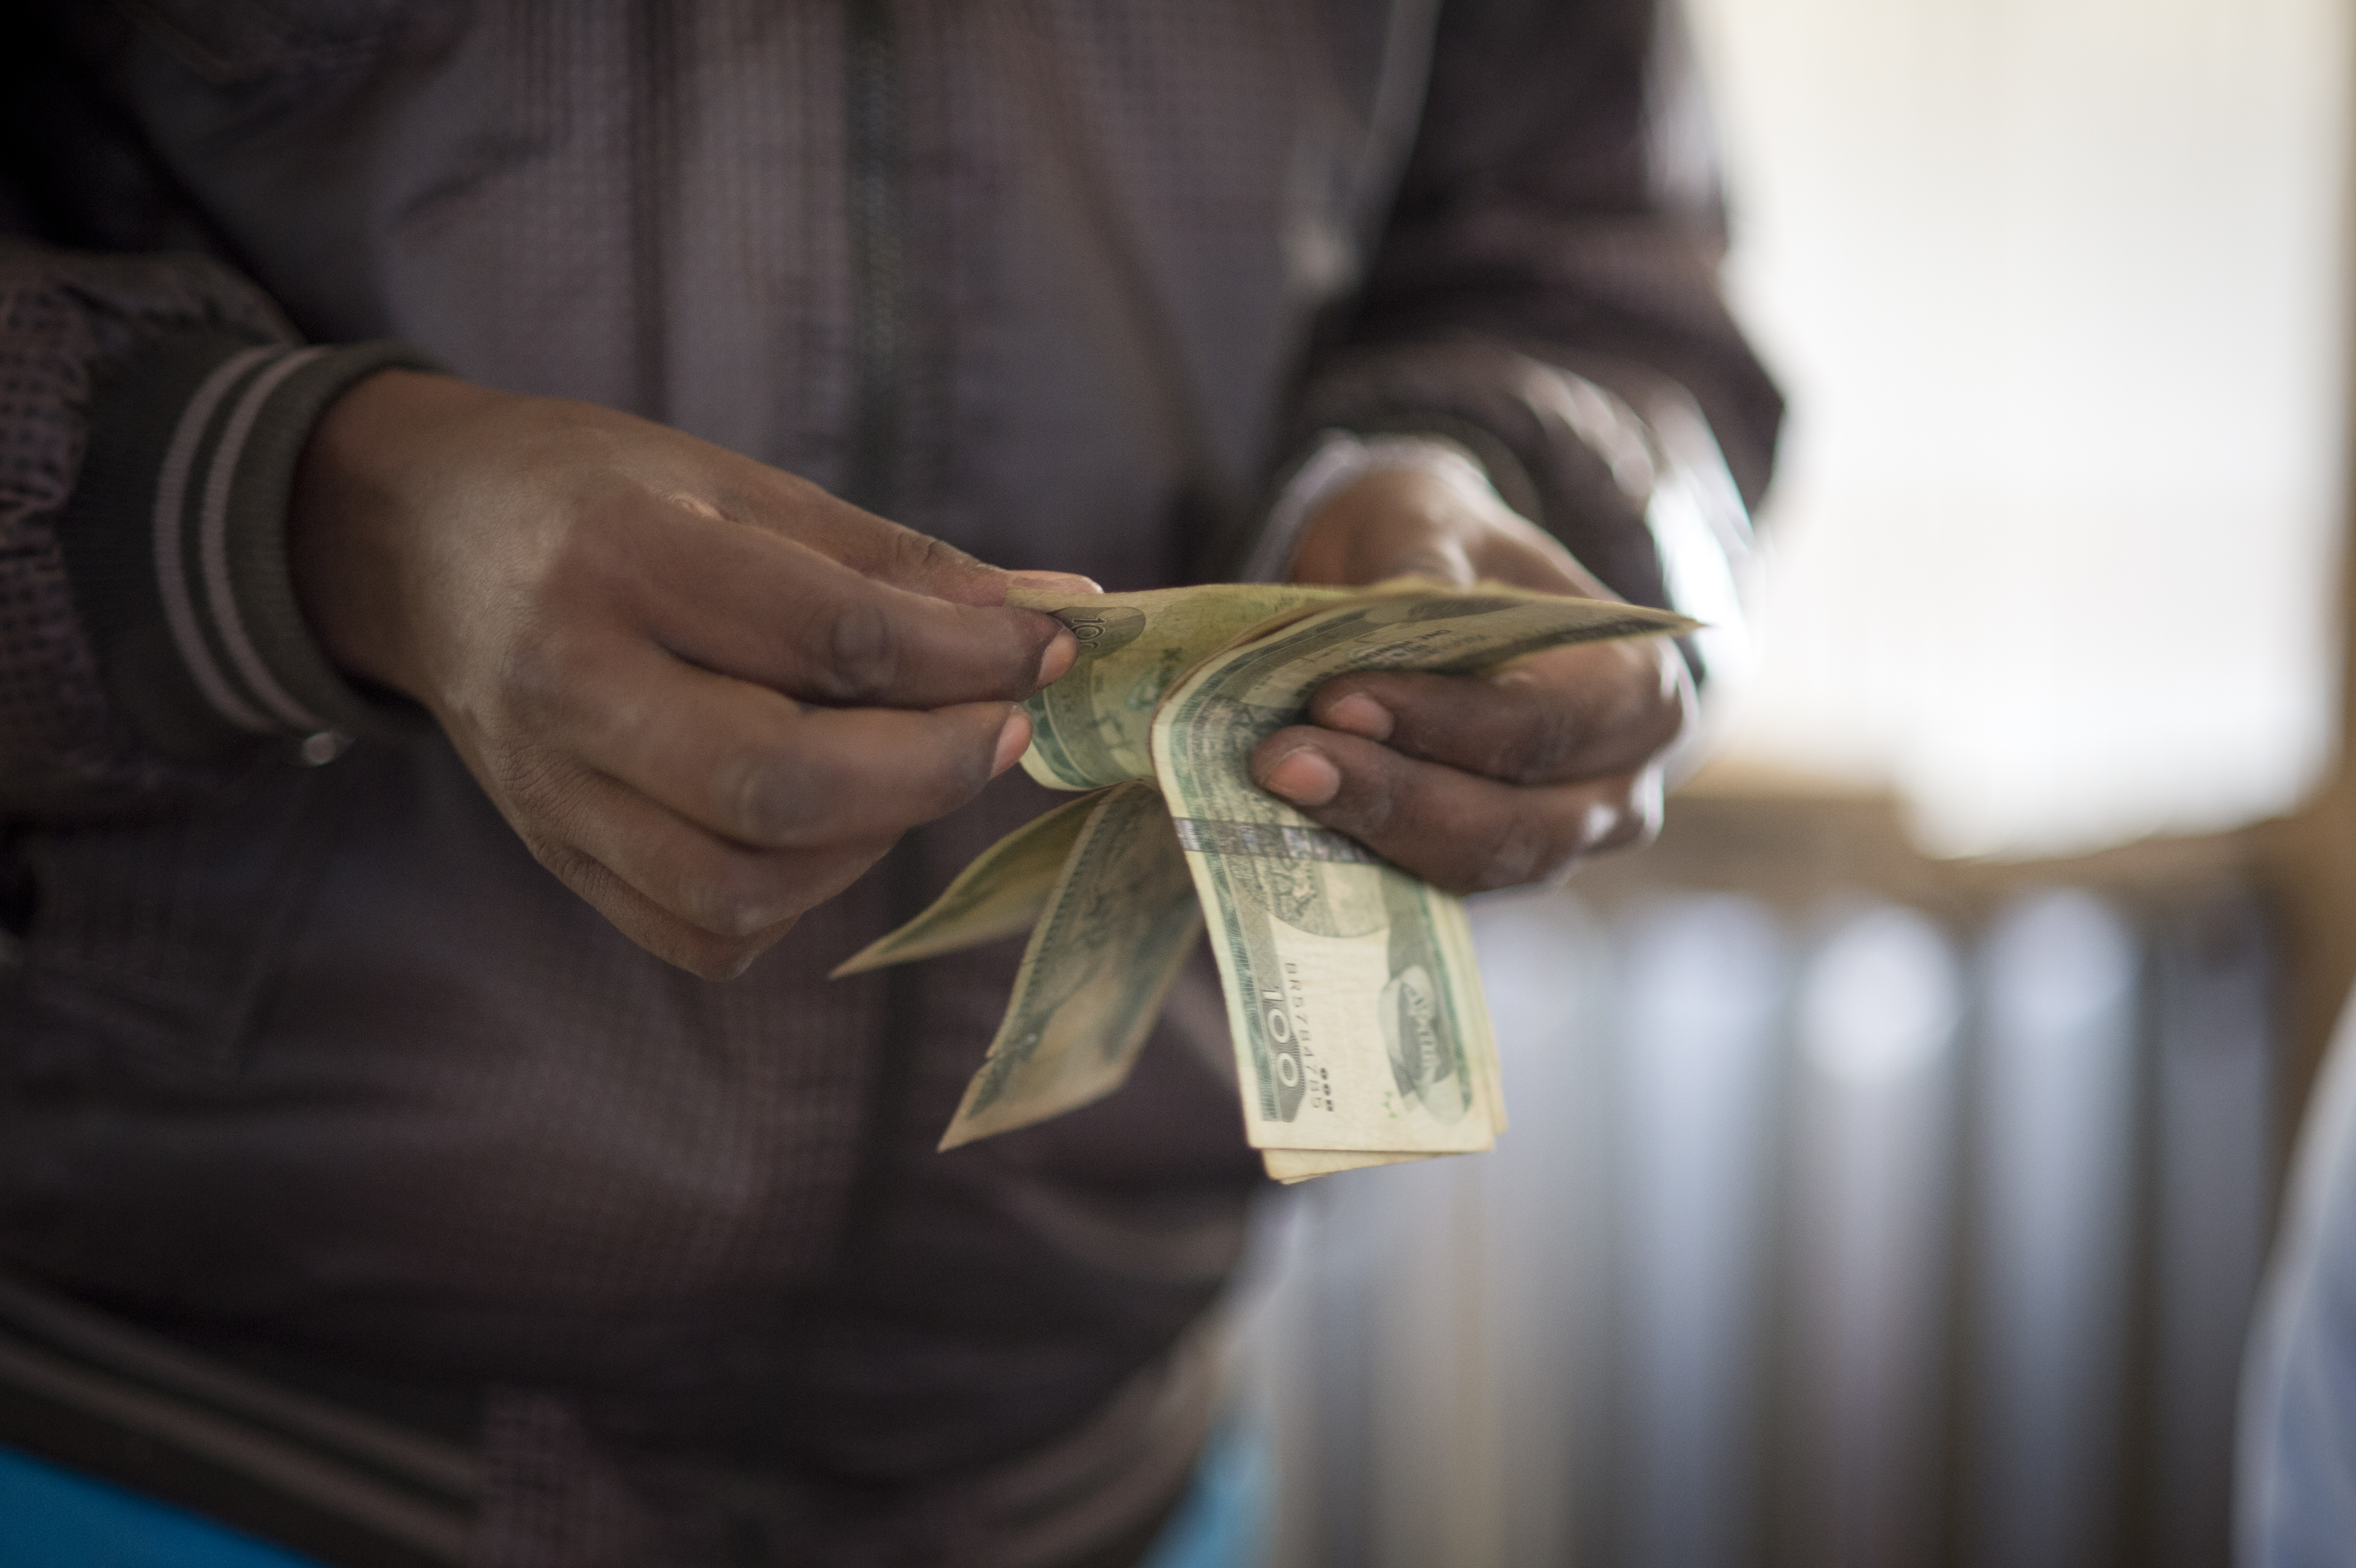 Remittances can be a lifeline for poor people, but many transfers are subject to high fees. Photo credit: WFP/Giulio d'Adamo/Flickr.